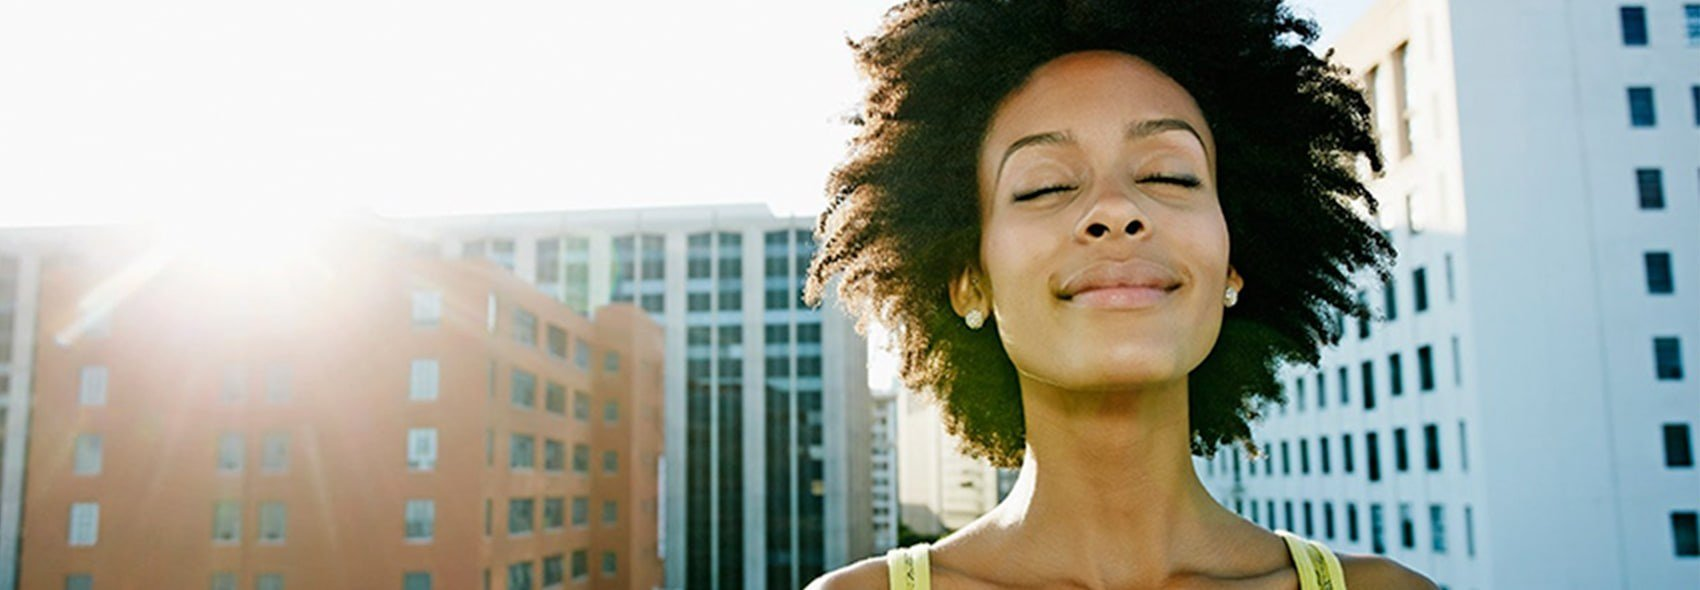 Wellbeing app  afro lady smiling